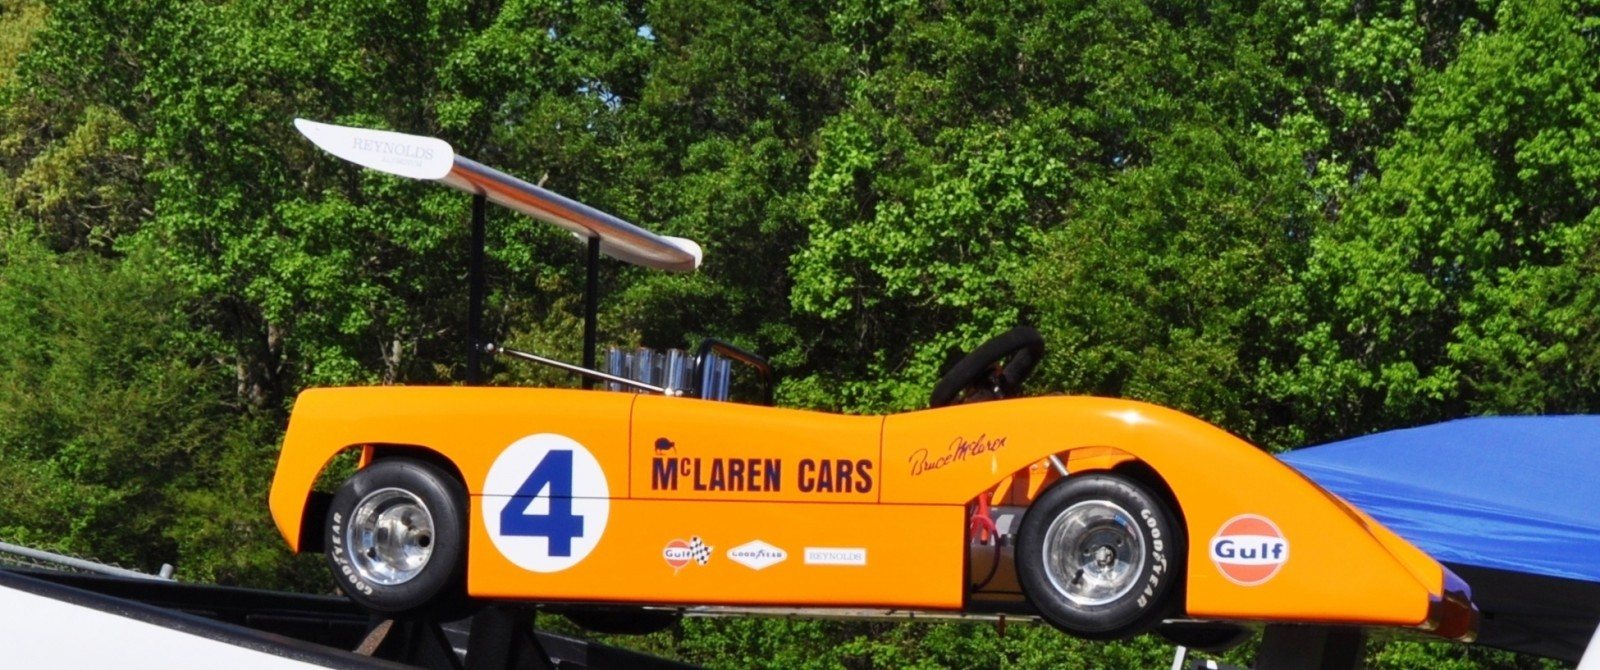 McLaren M8B Go-Kart Seeking Posh New Home, McLaren Owner Strongly Preferred 2